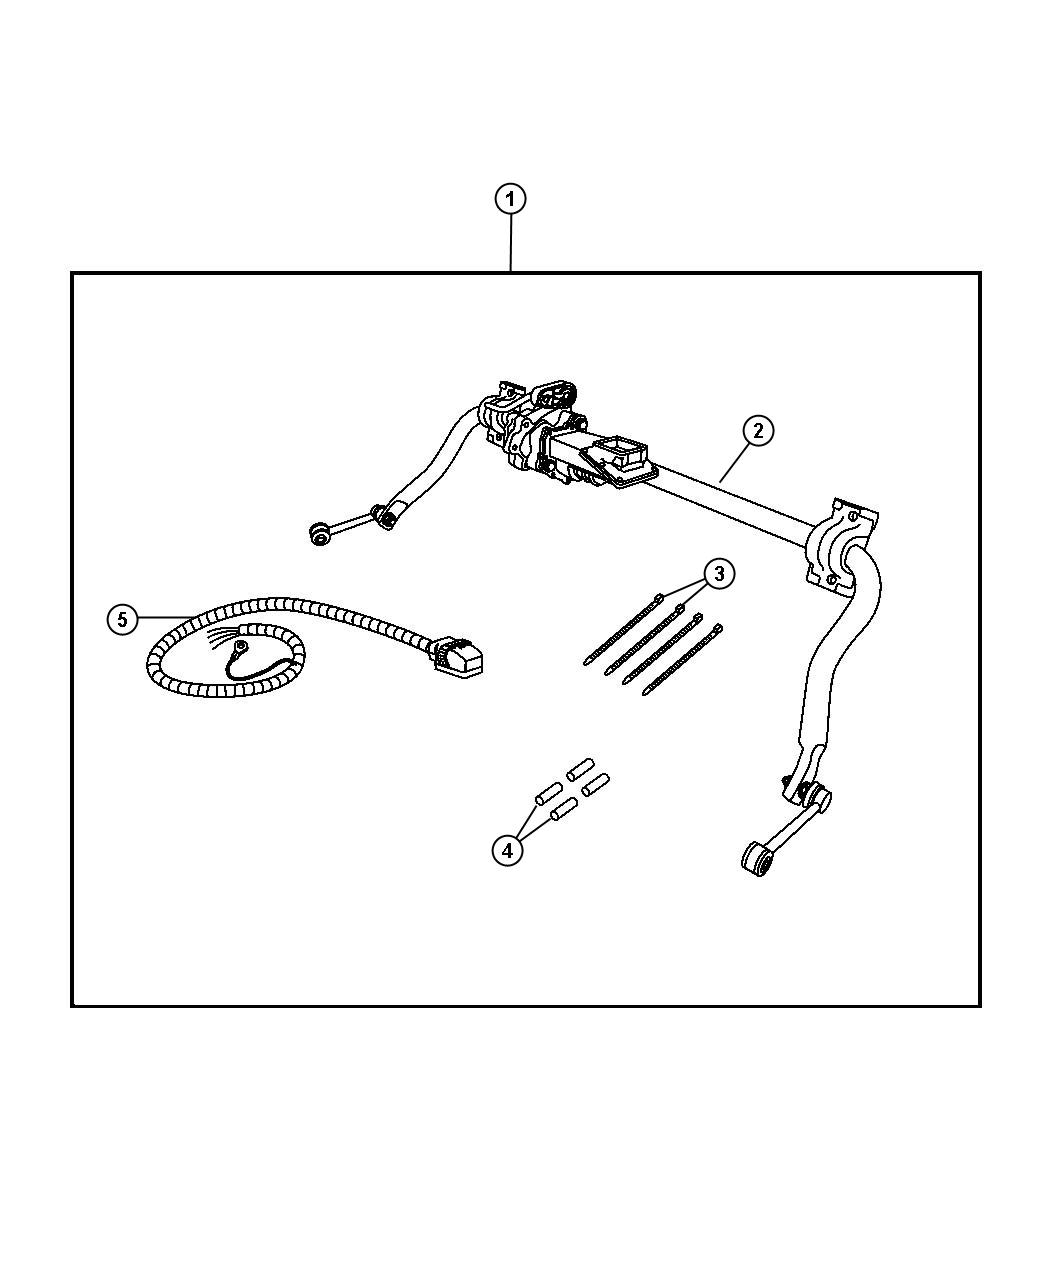 Dodge Ram Kit Includes Wiring Sway Bar Assembly